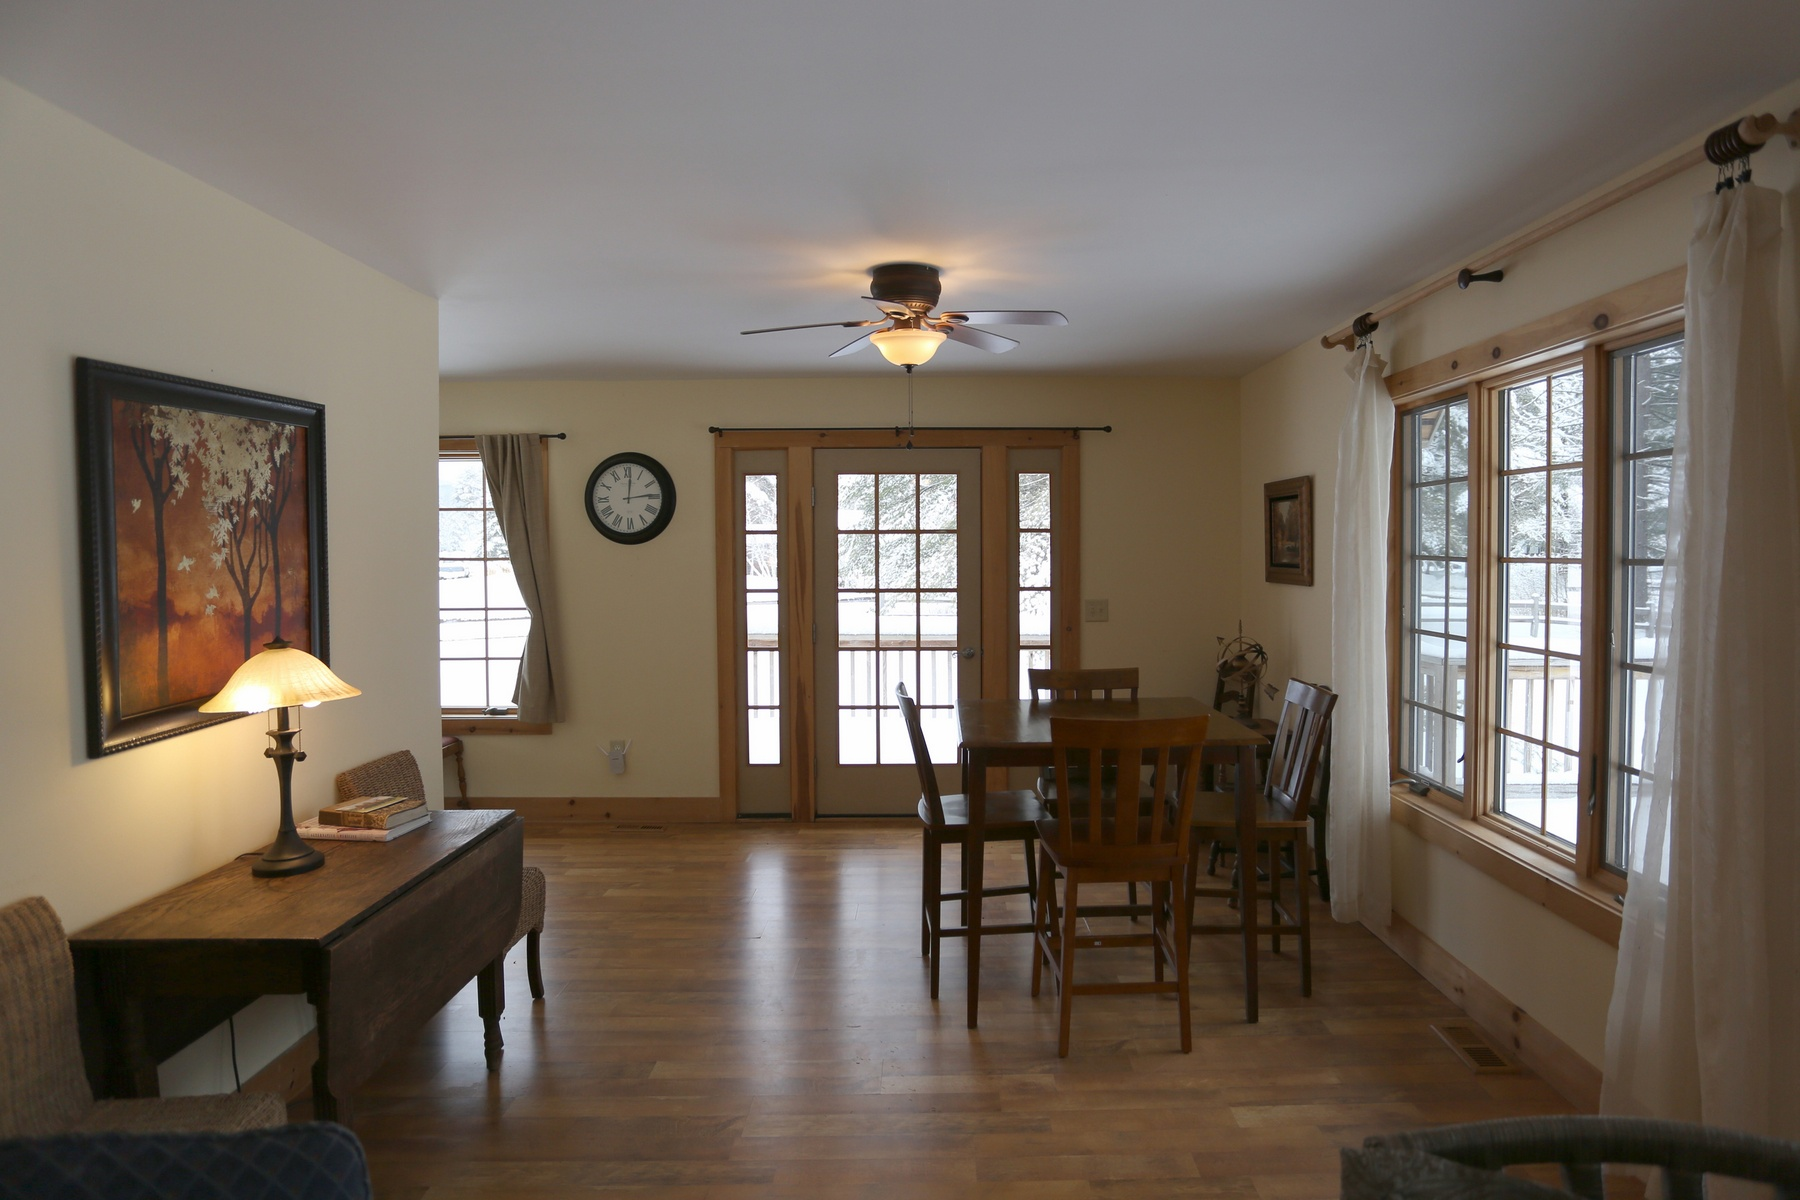 Additional photo for property listing at New Adirondack Chalet 1205  Harrisburg Rd 史东尼河, 纽约州 12878 美国